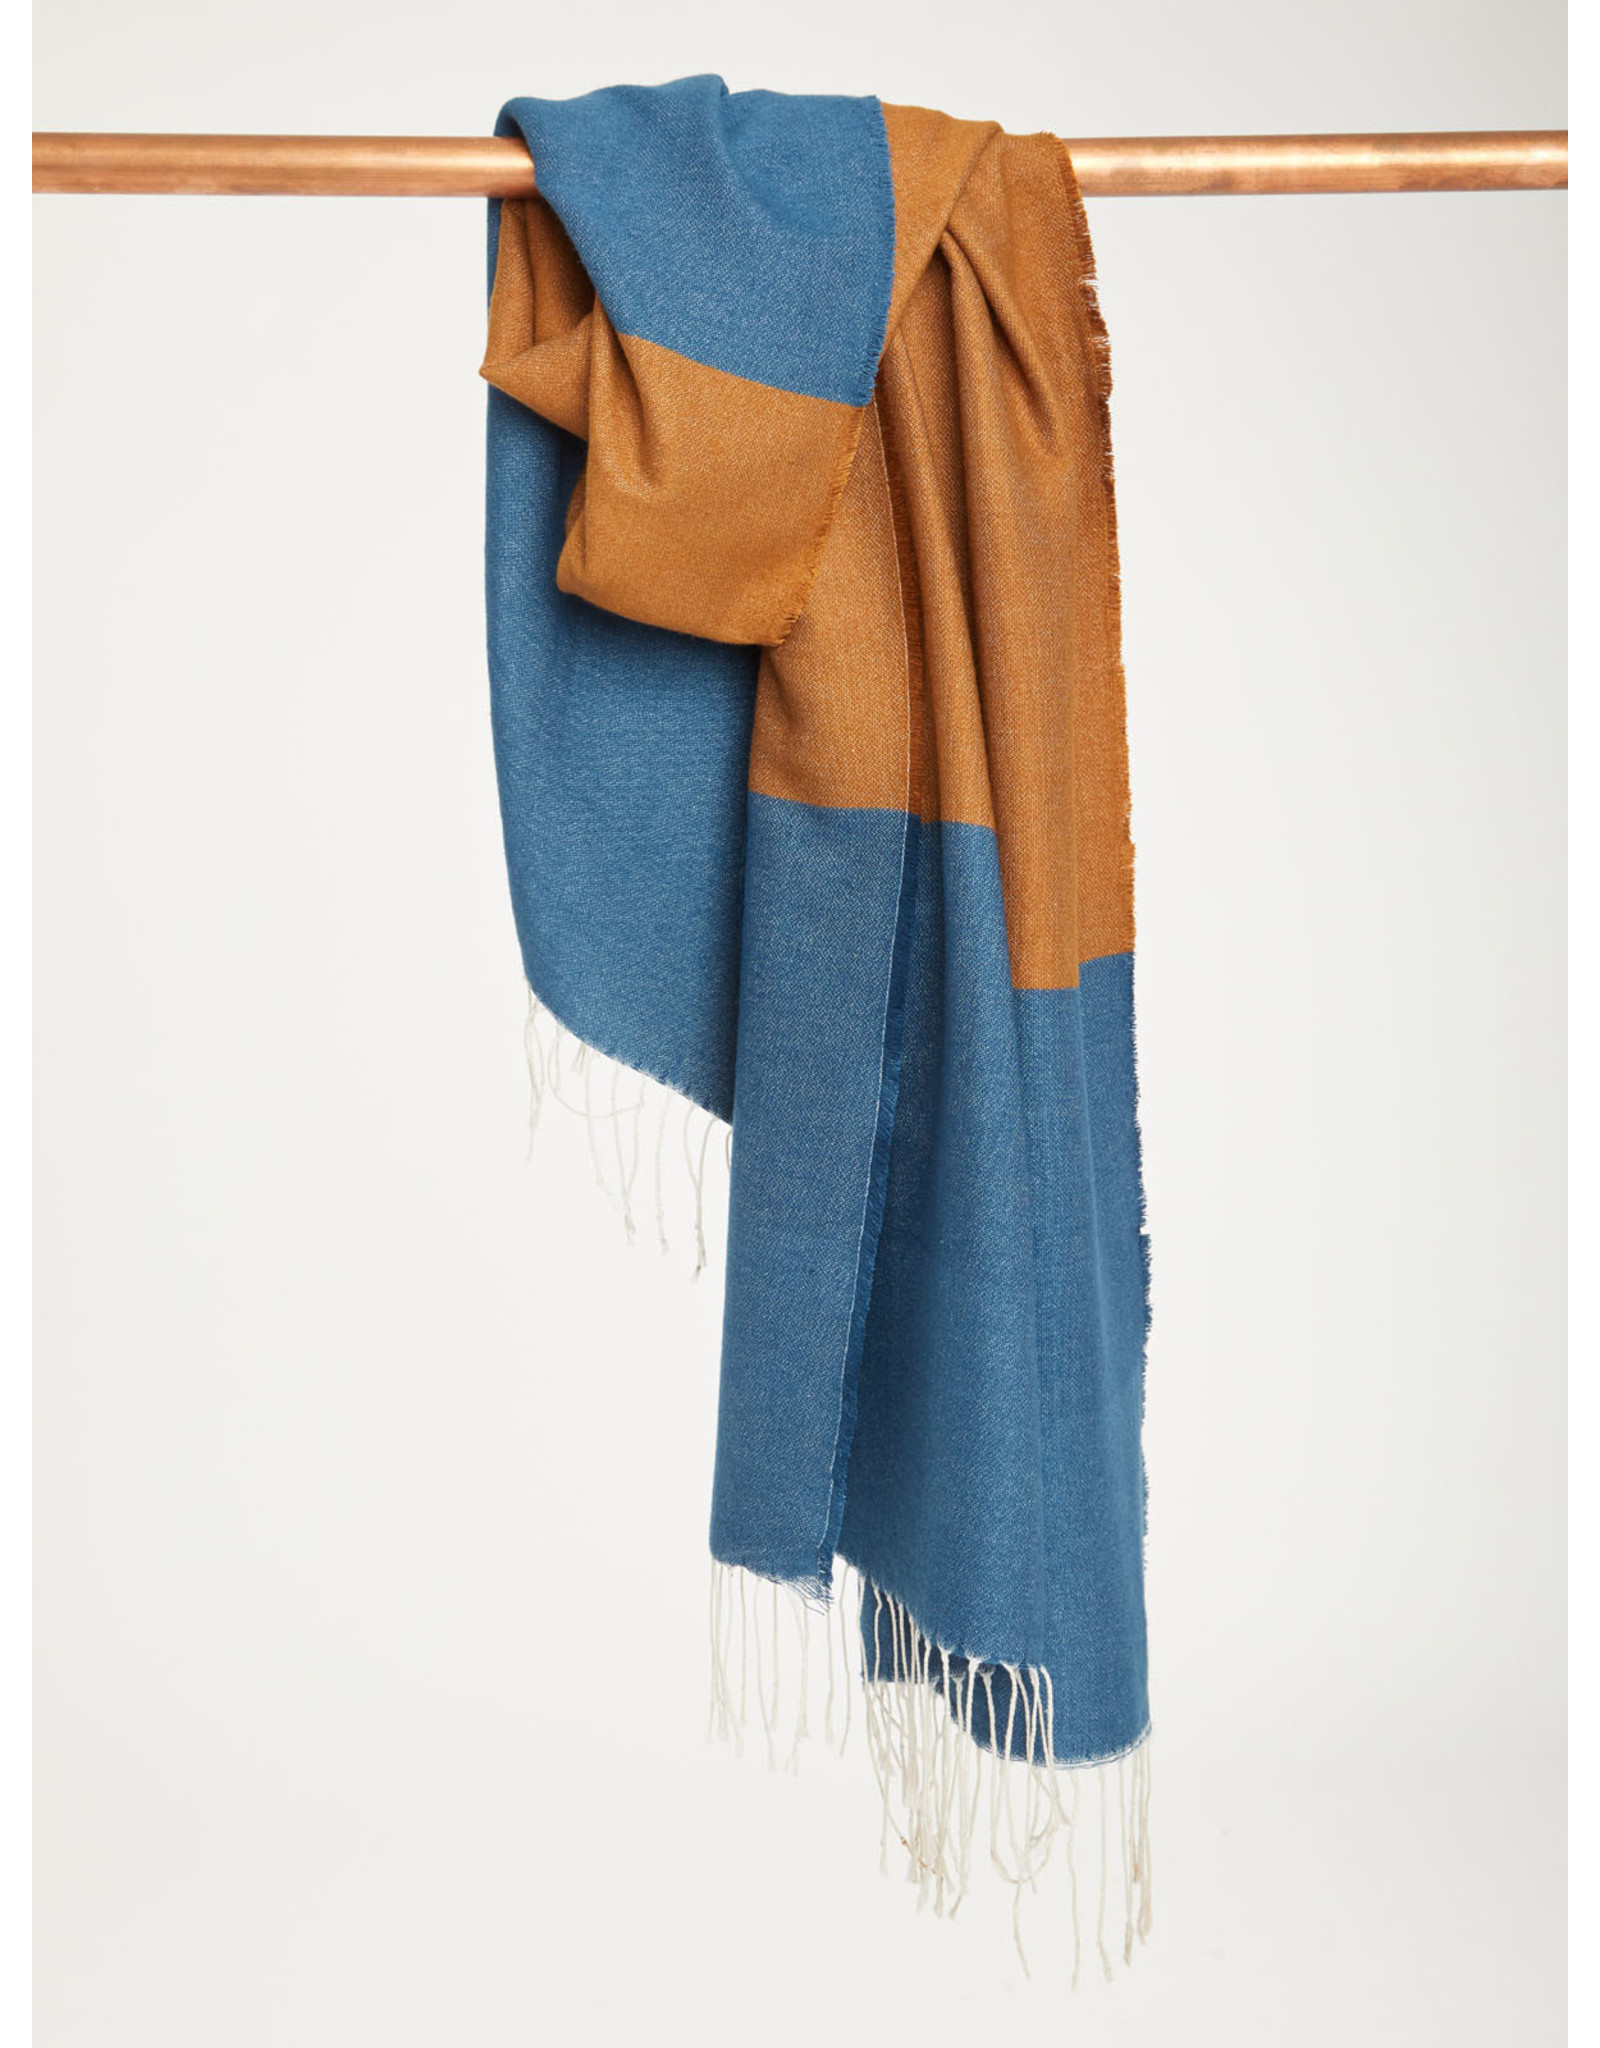 Thought Thought Linear Scarf